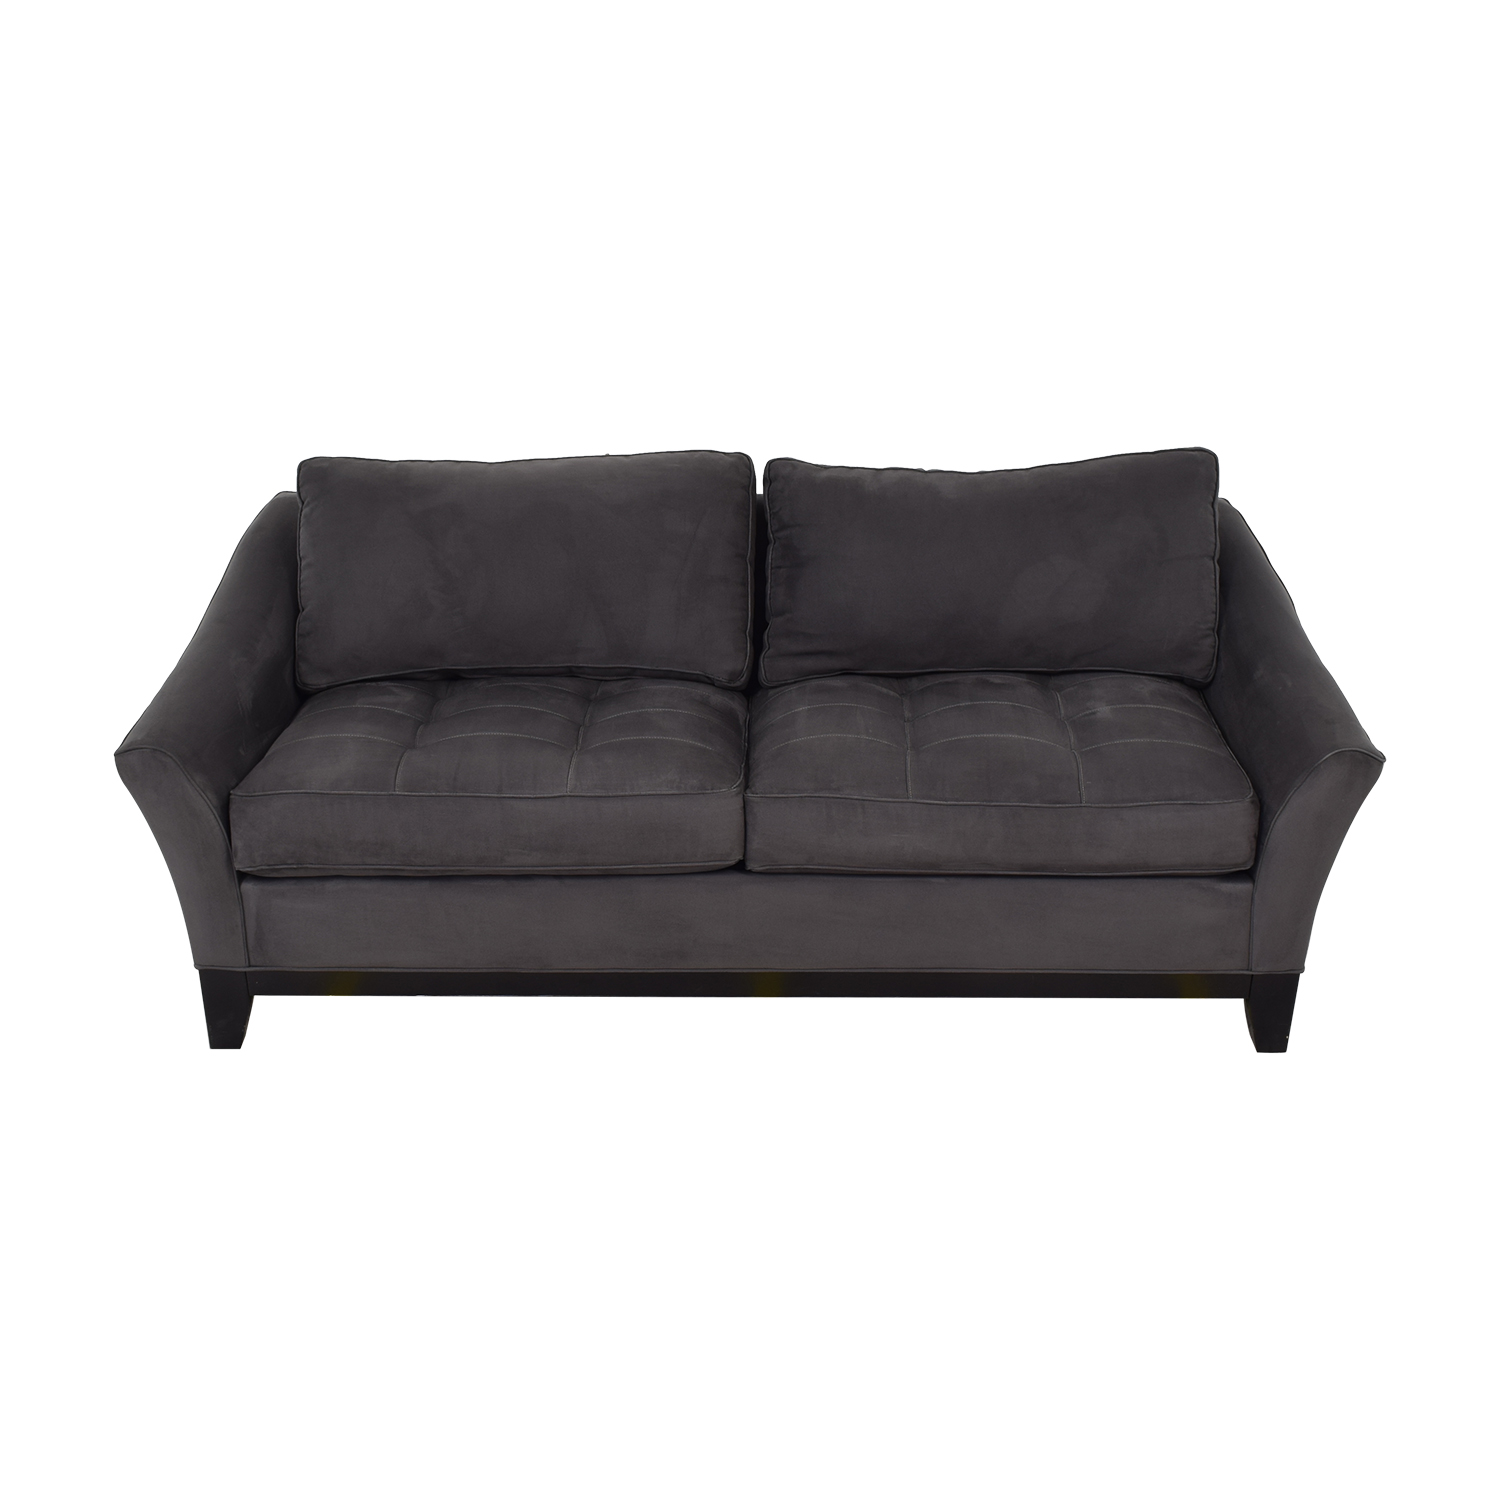 HM Richards Furniture HM Richards Sofa Bed dark grey